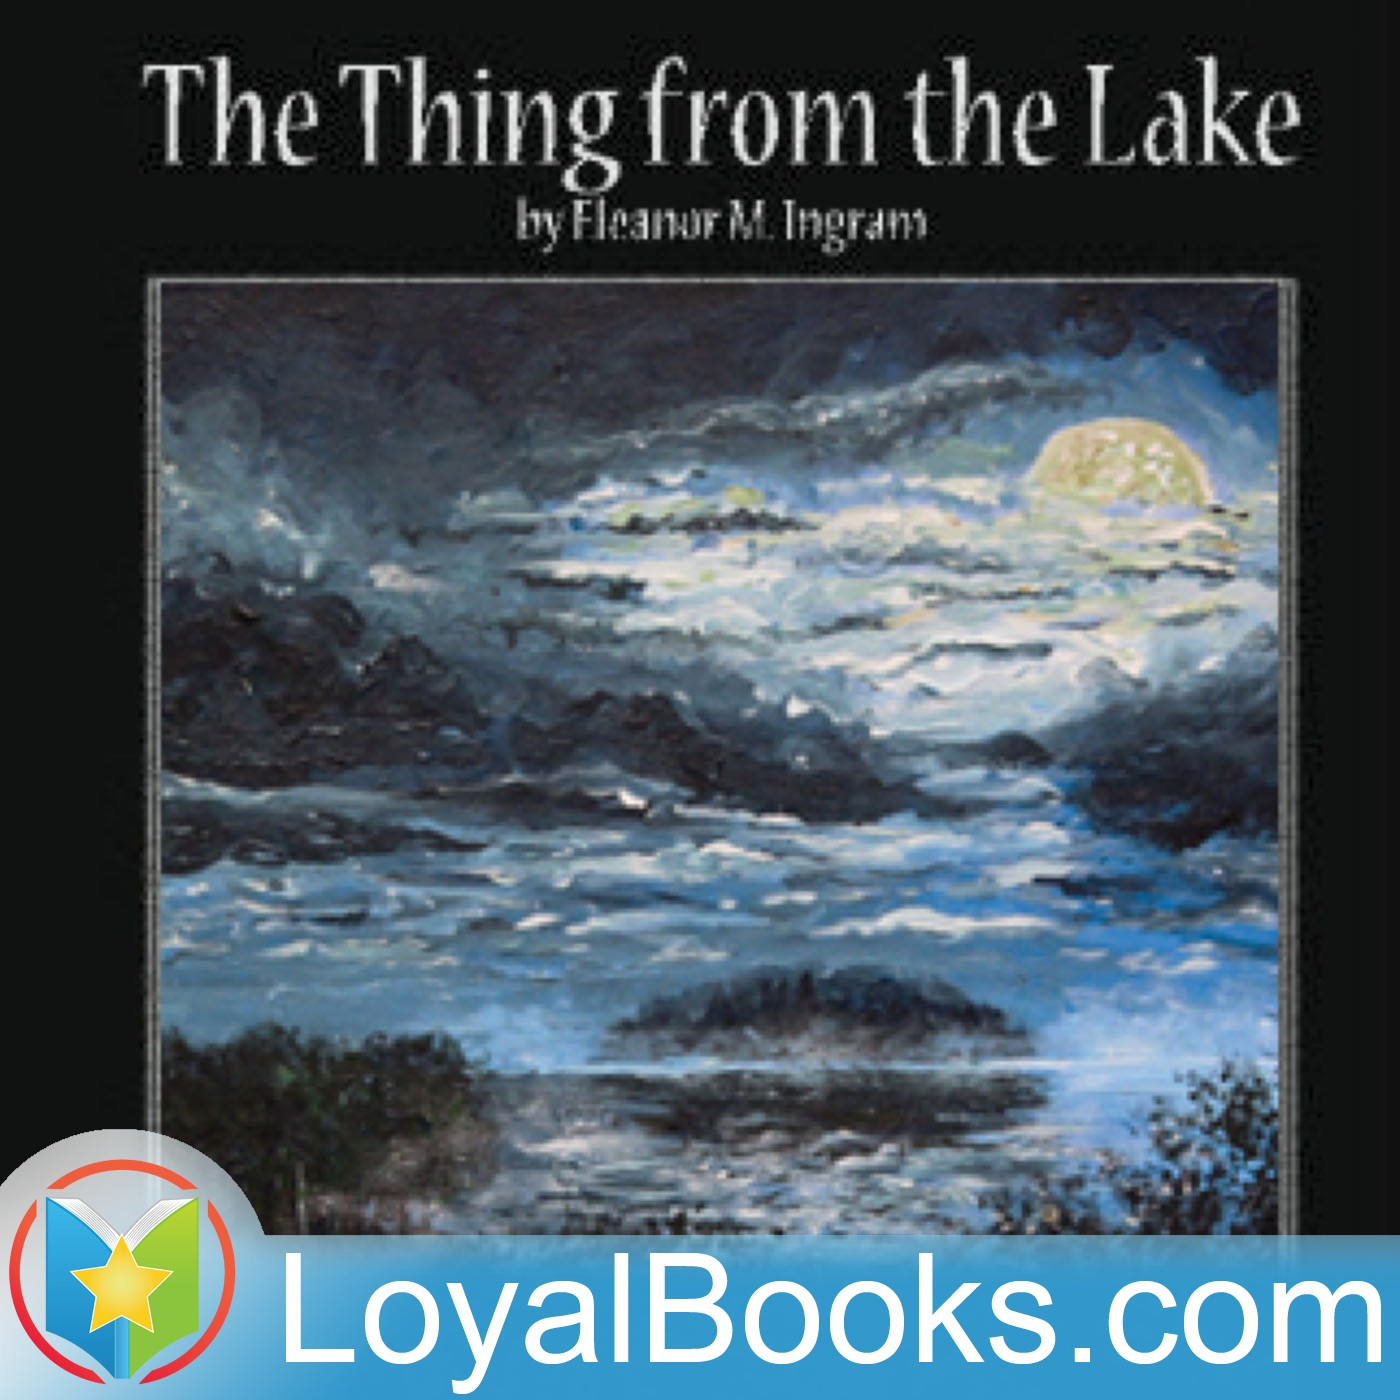 <![CDATA[The Thing from the Lake by Eleanor M. Ingram]]>